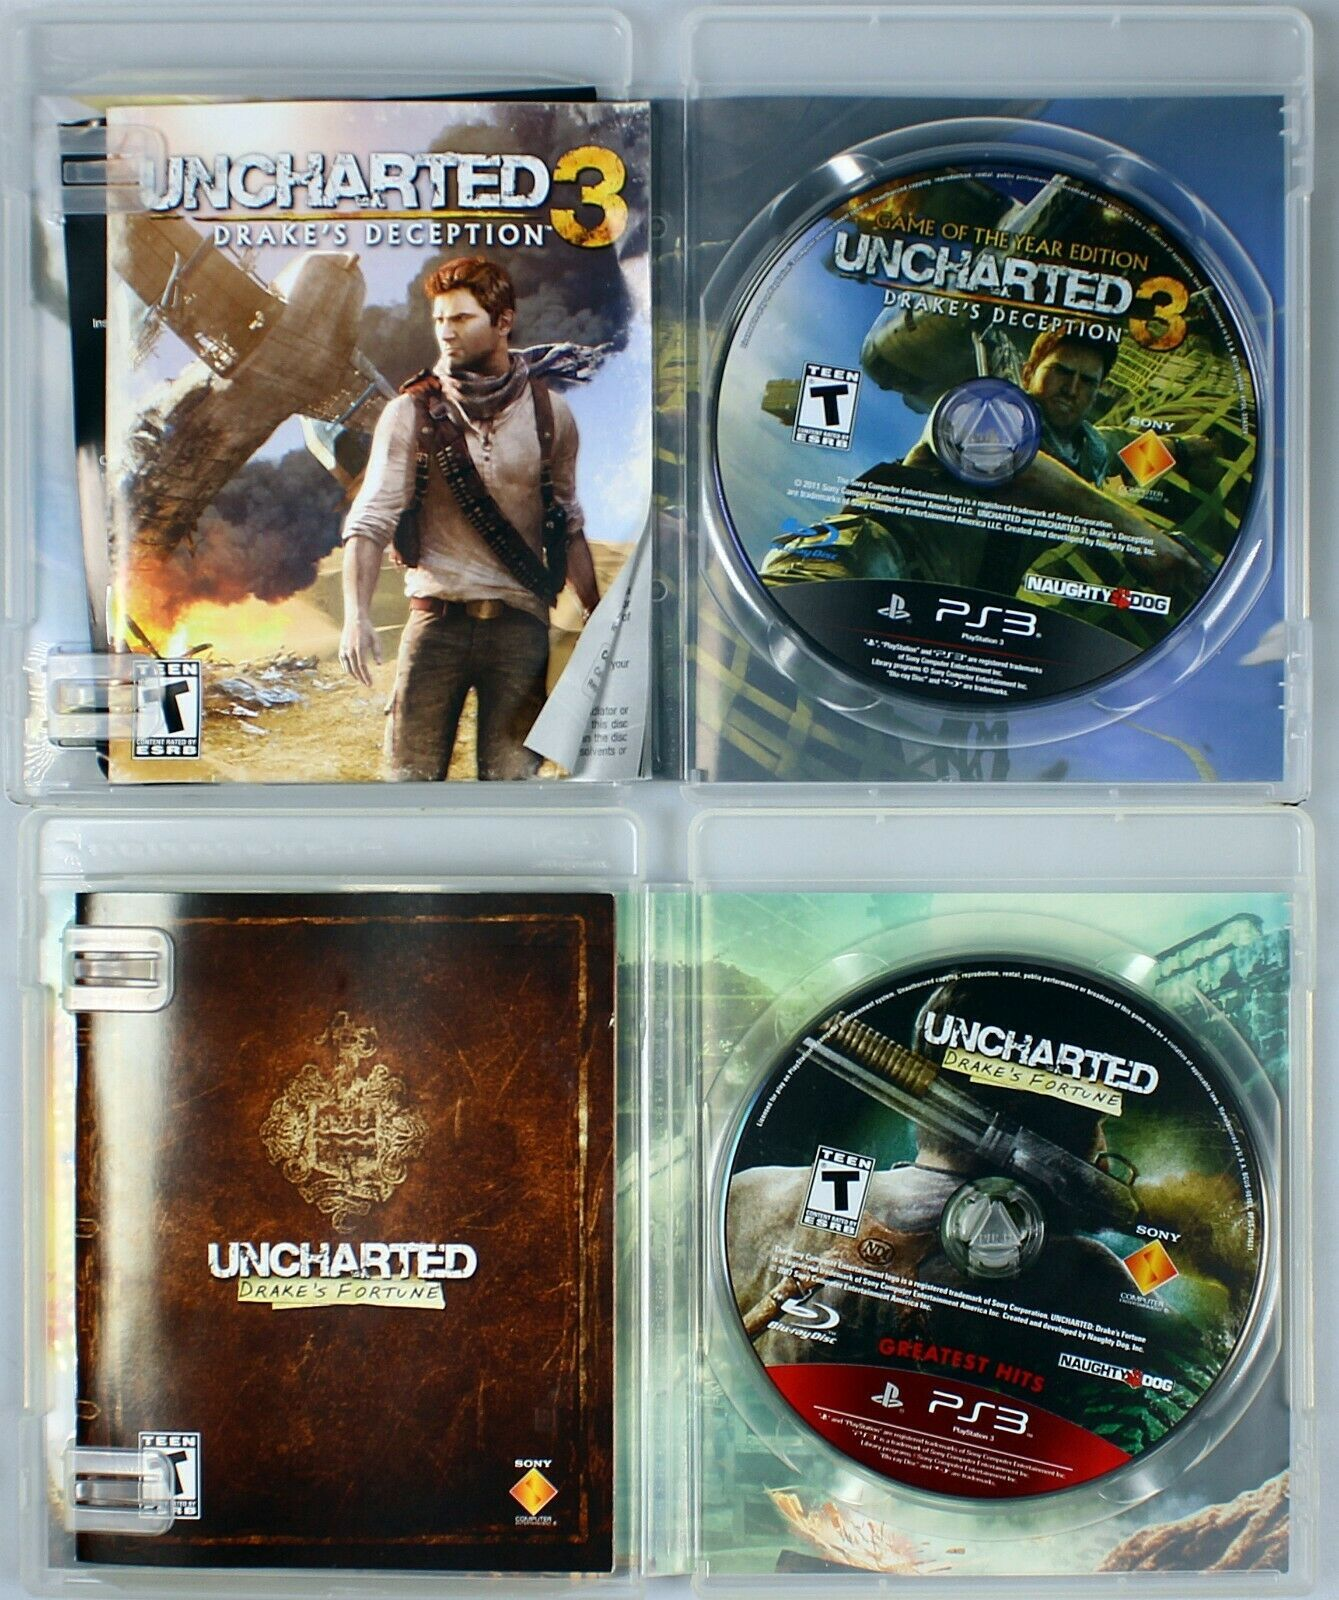 Drakes Fortune Uncharted deception lot of 2 games Sony Play station 3 PS Game image 3